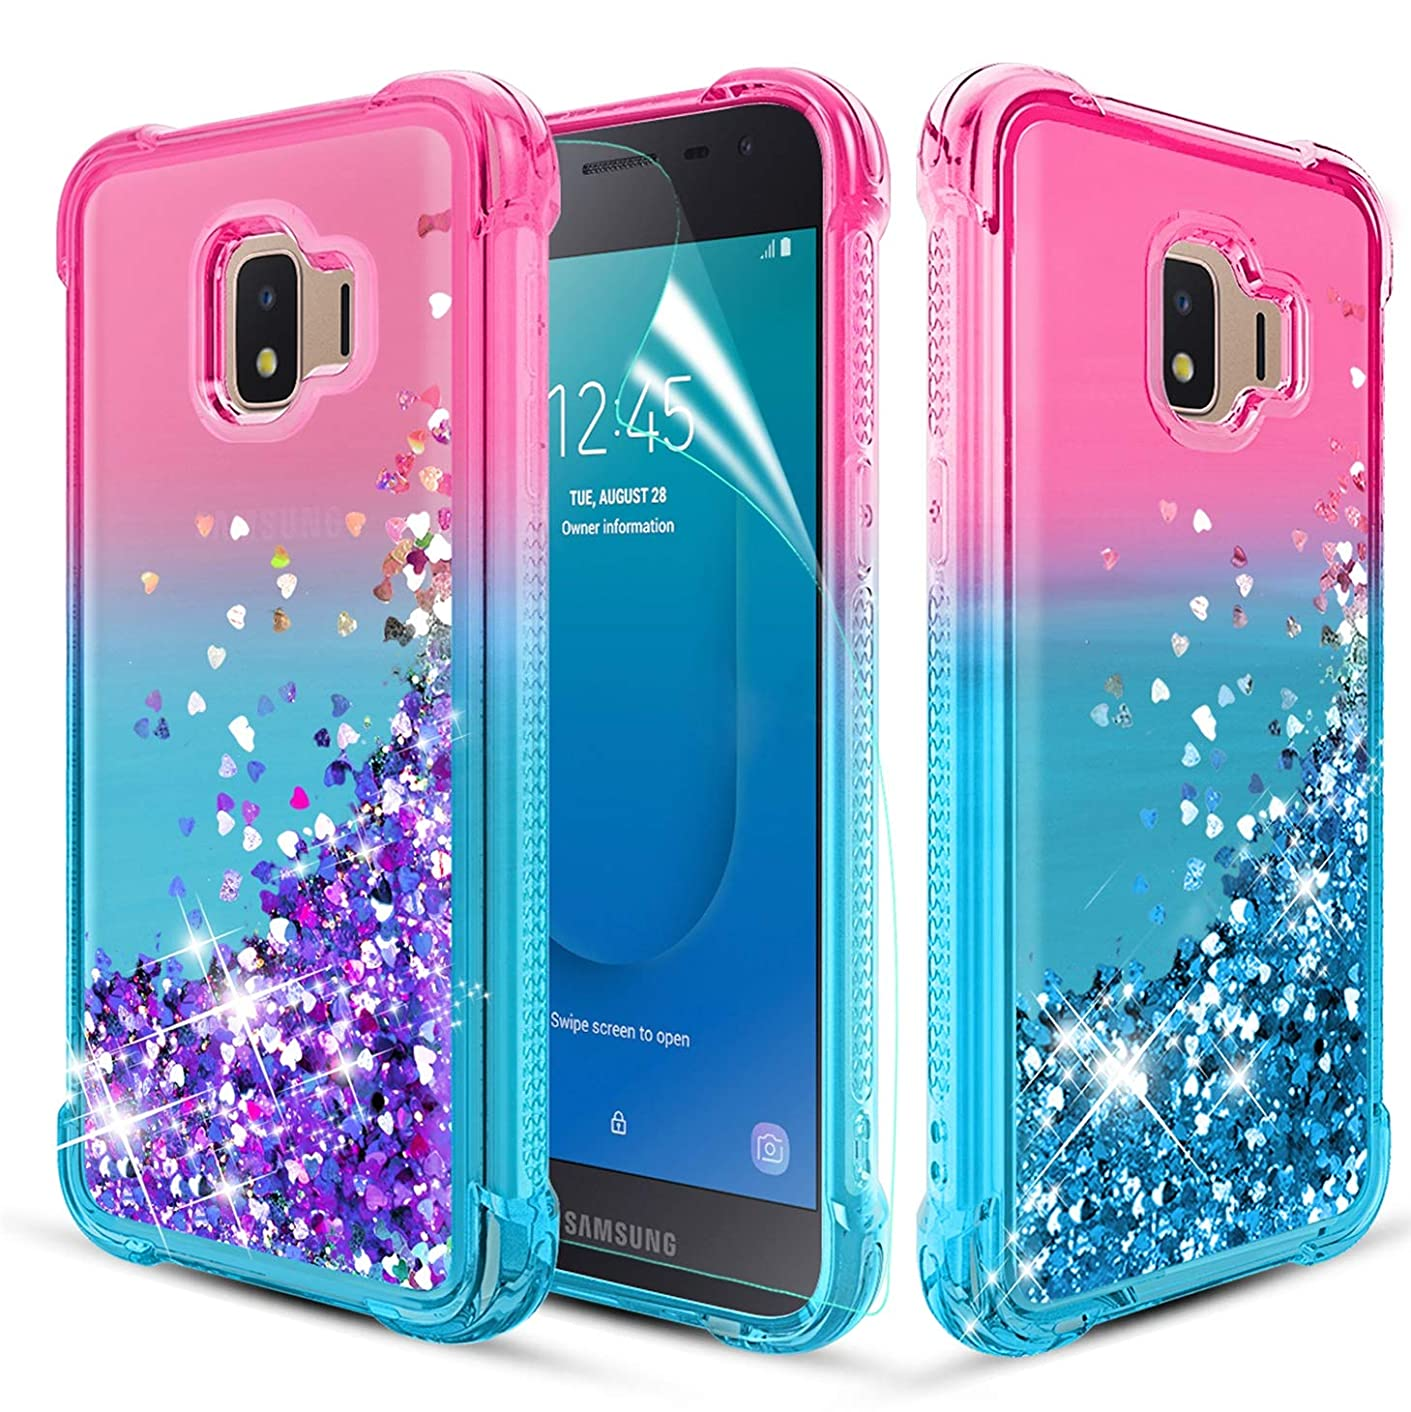 Likeny Case for Galaxy J2,Galaxy J2 Pure/J2 Dash/J2 Core/J2 Shine with Screen Protector Liquid Floating Quicksand Bling Sparkle,Shockproof,Glitter Cover for Cute Girls Women Phone Case Pink/Teal